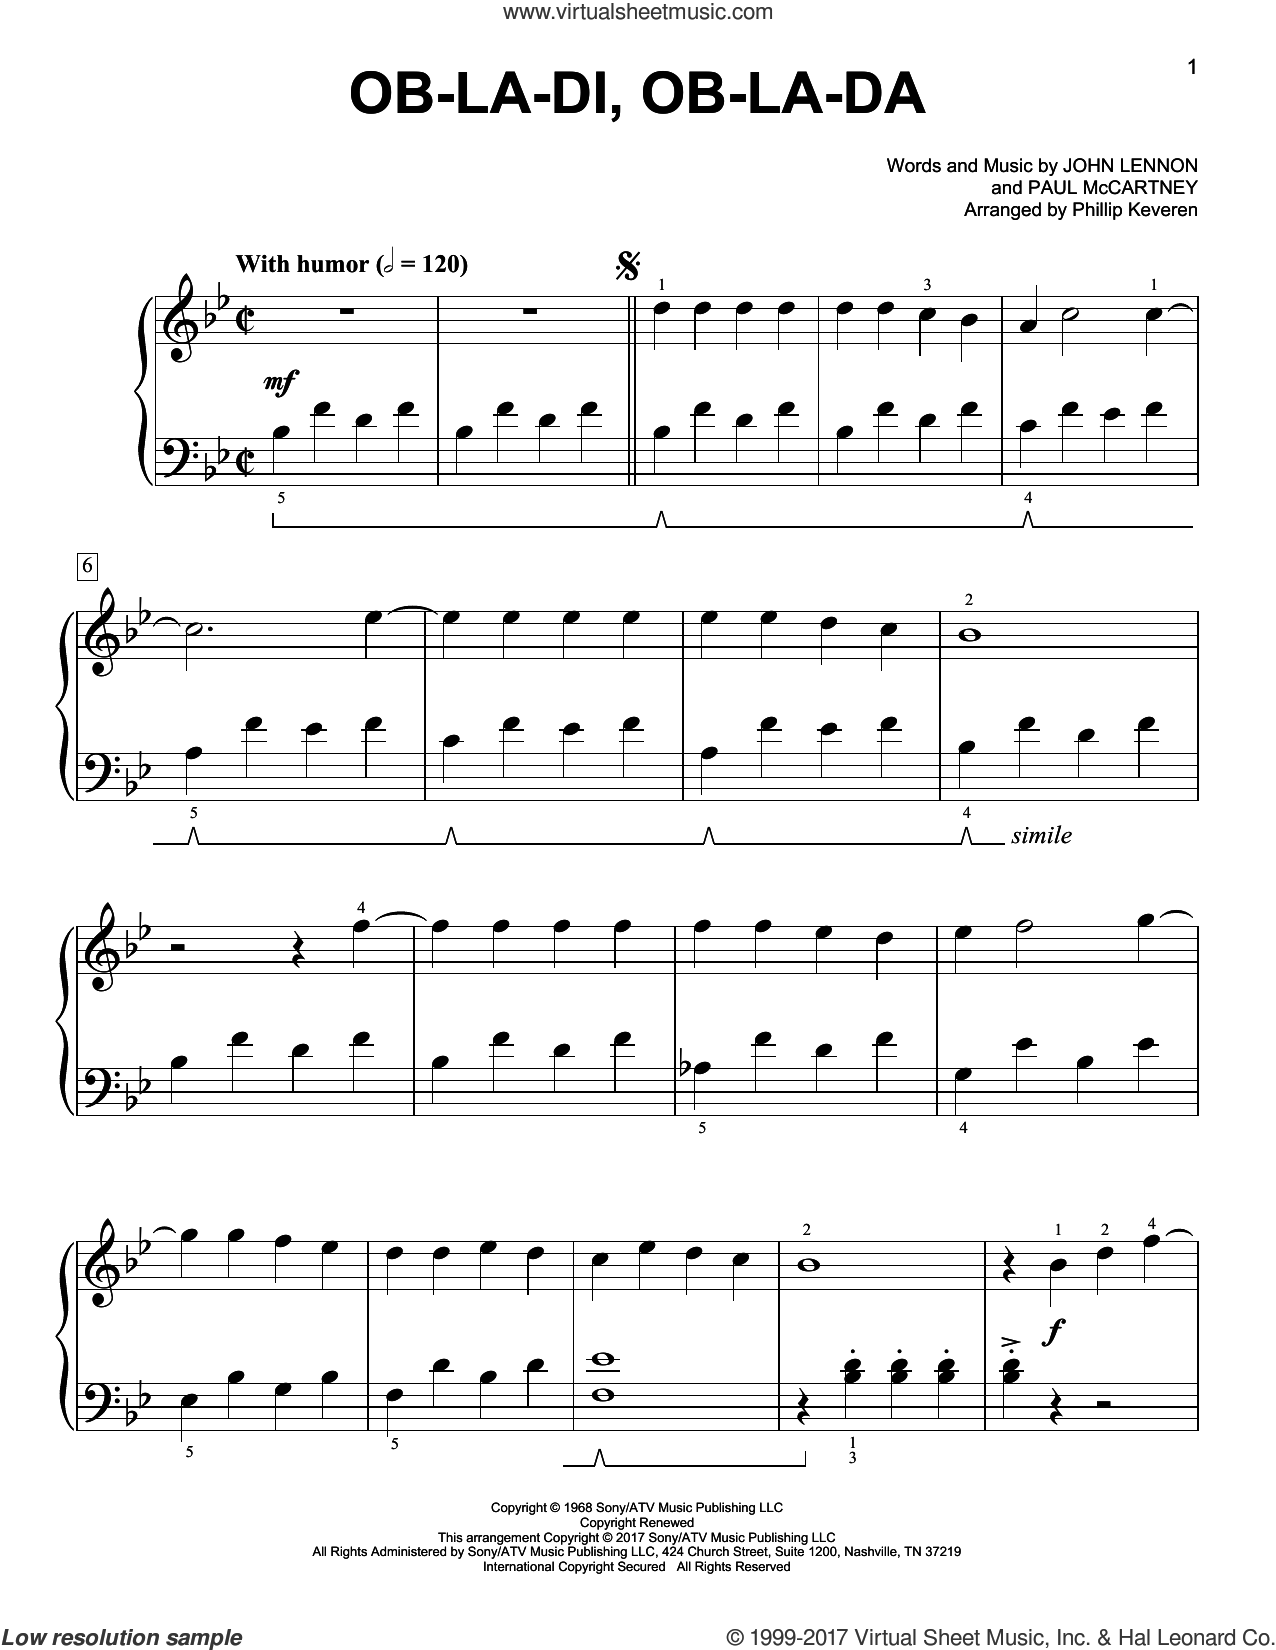 Ob-La-Di, Ob-La-Da [Classical version] (arr. Phillip Keveren) sheet music for piano solo by Paul McCartney, Phillip Keveren, The Beatles and John Lennon, easy skill level